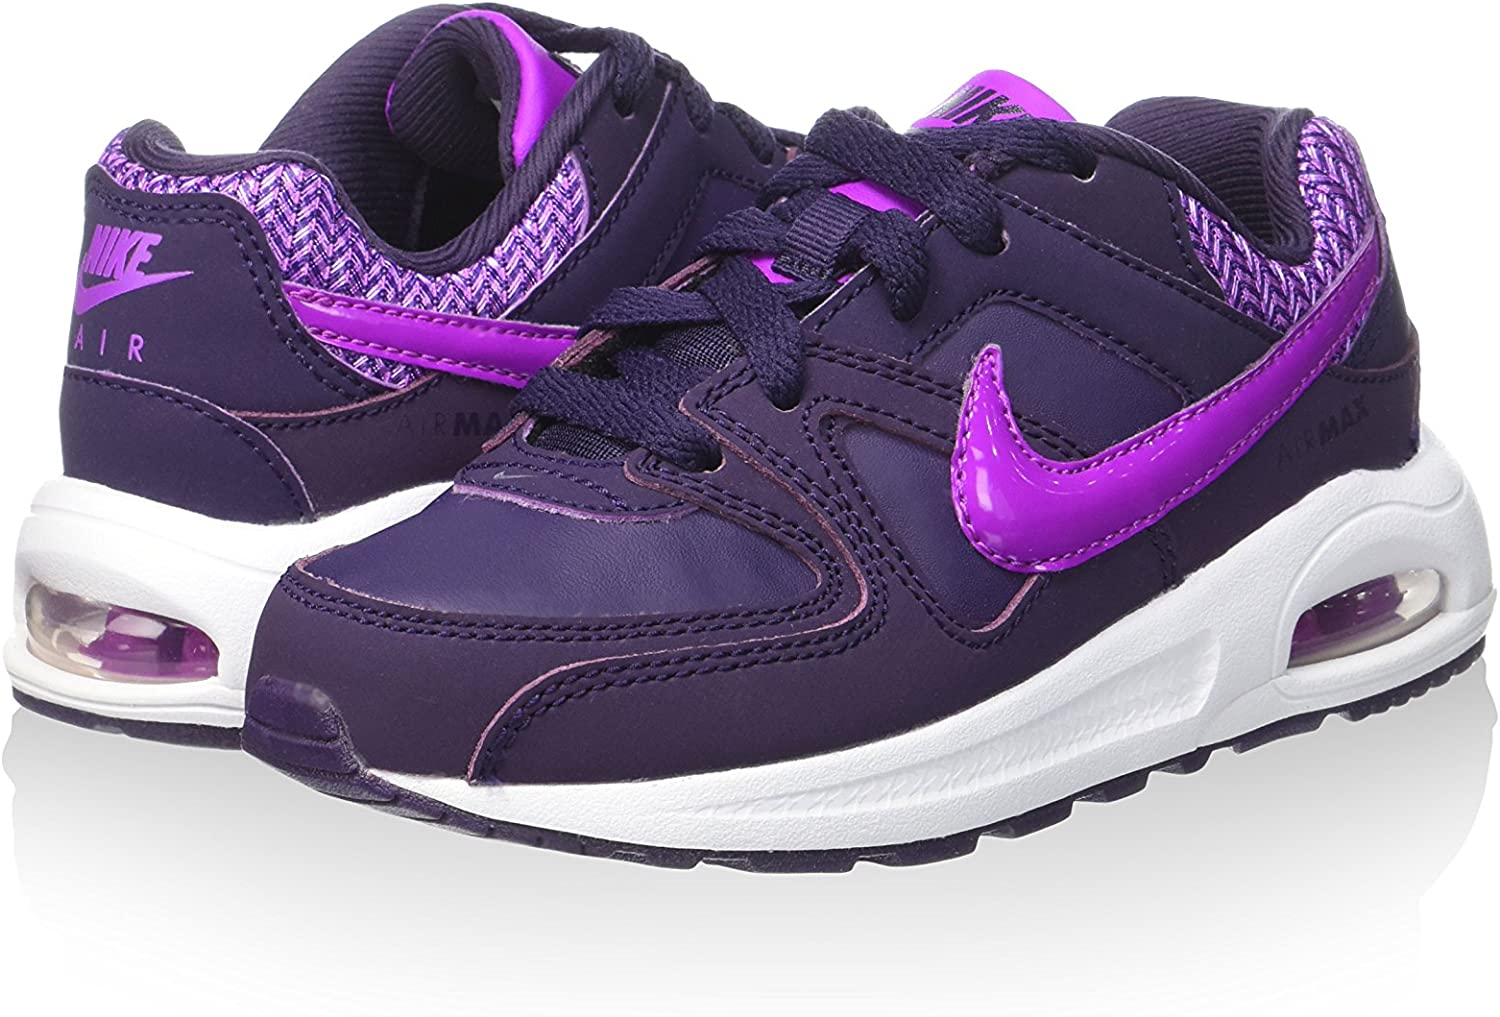 Nike 844356-551, Zapatillas de Trail Running para Niñas, Morado (Purple Dynasty/Hyper Violet-White), 28 EU: Amazon.es: Zapatos y complementos